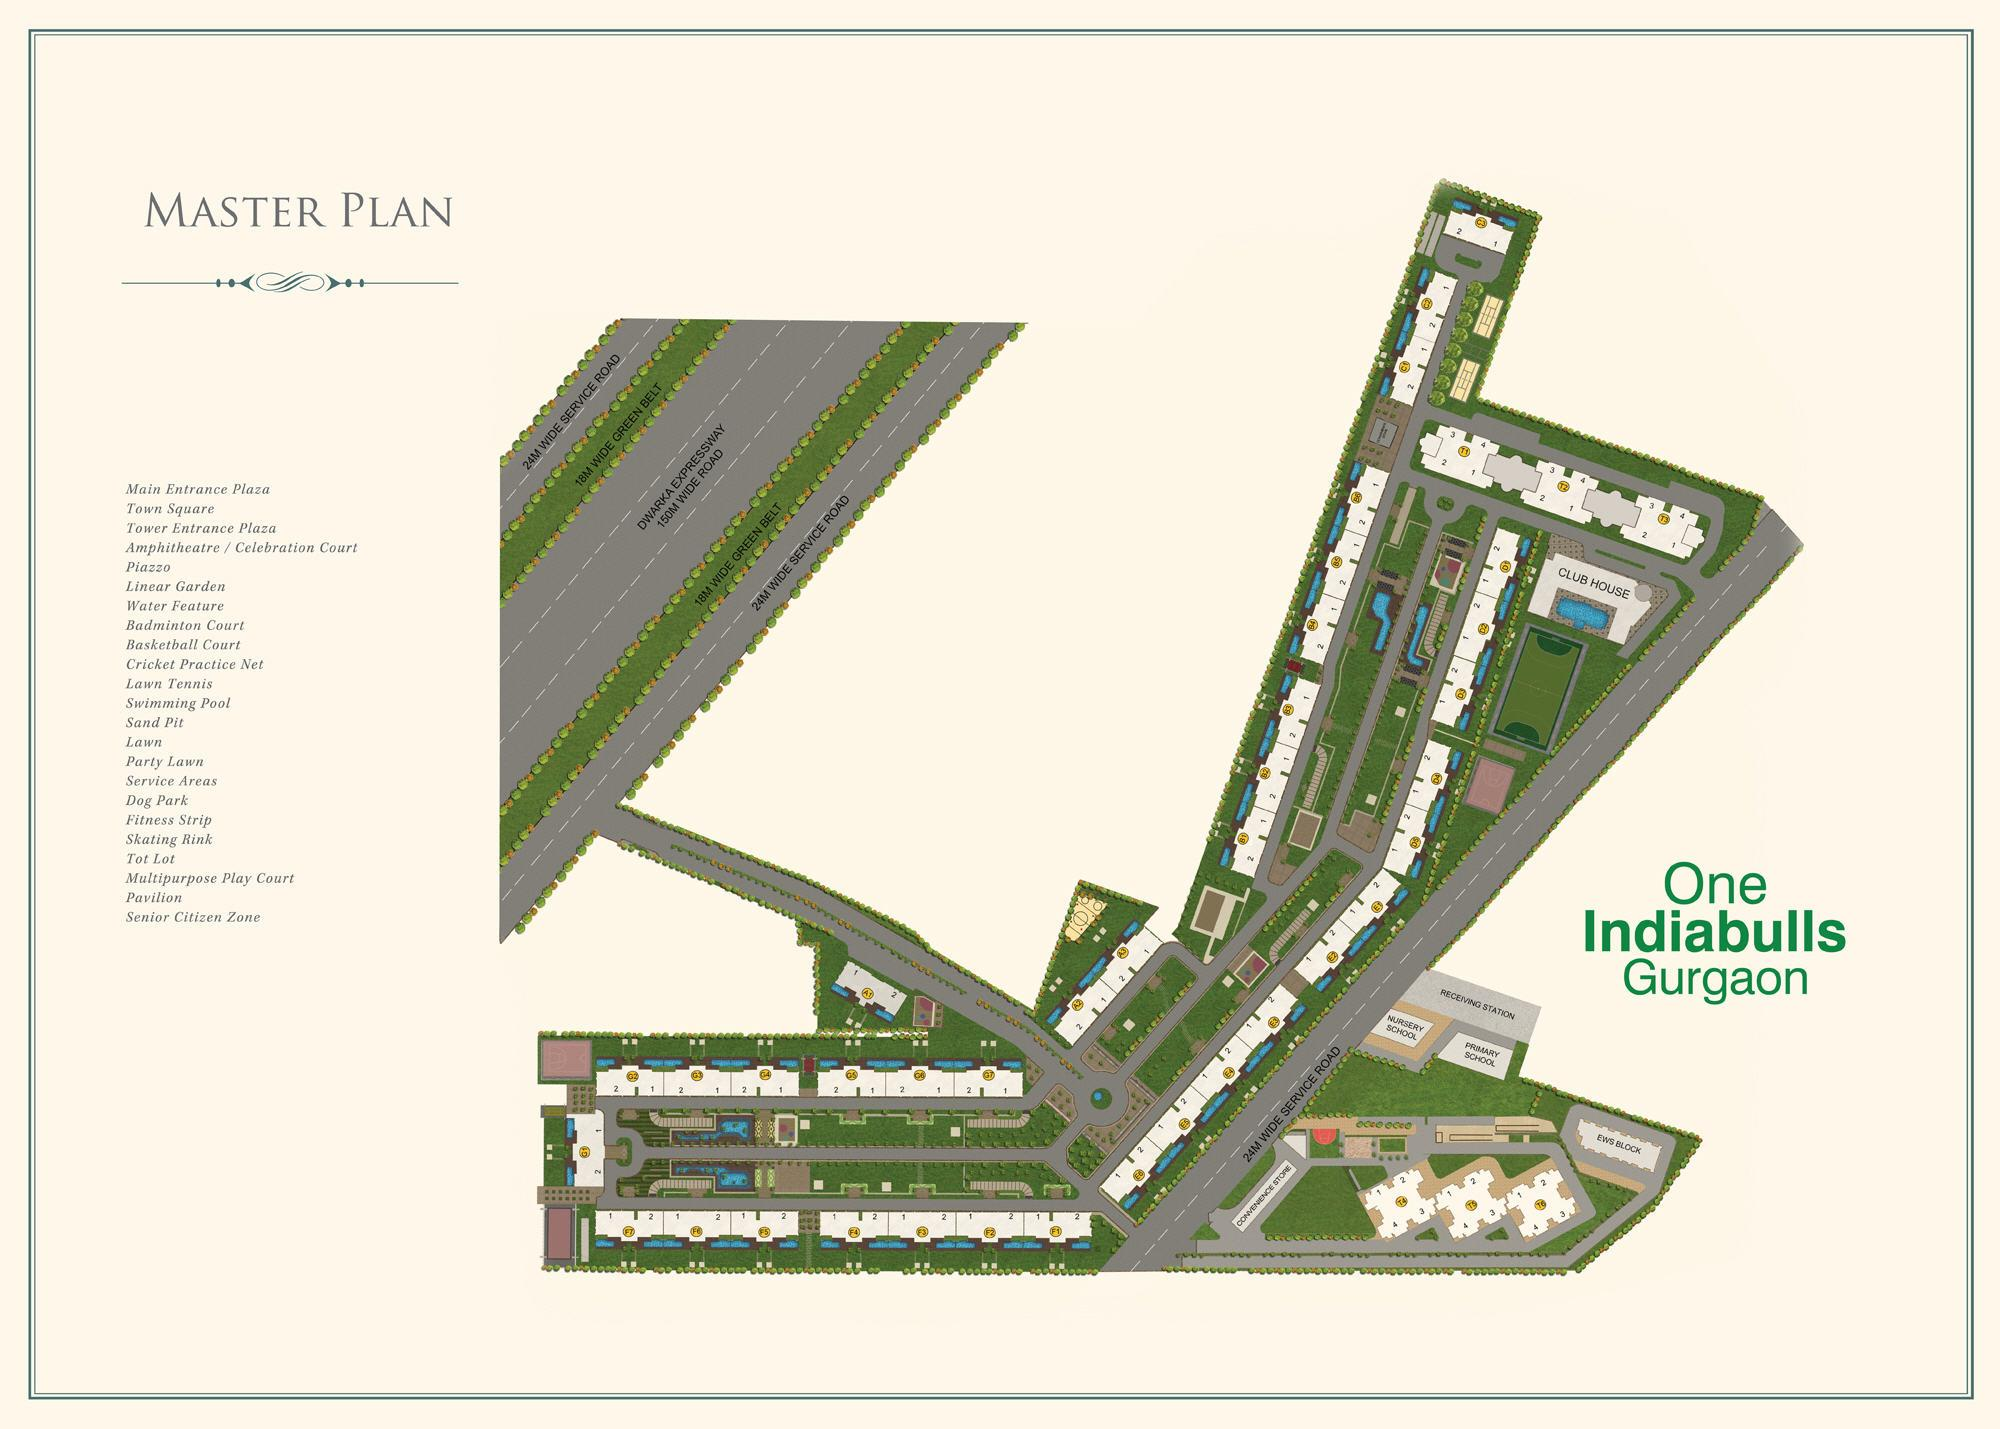 Site plan of One Indiabulls